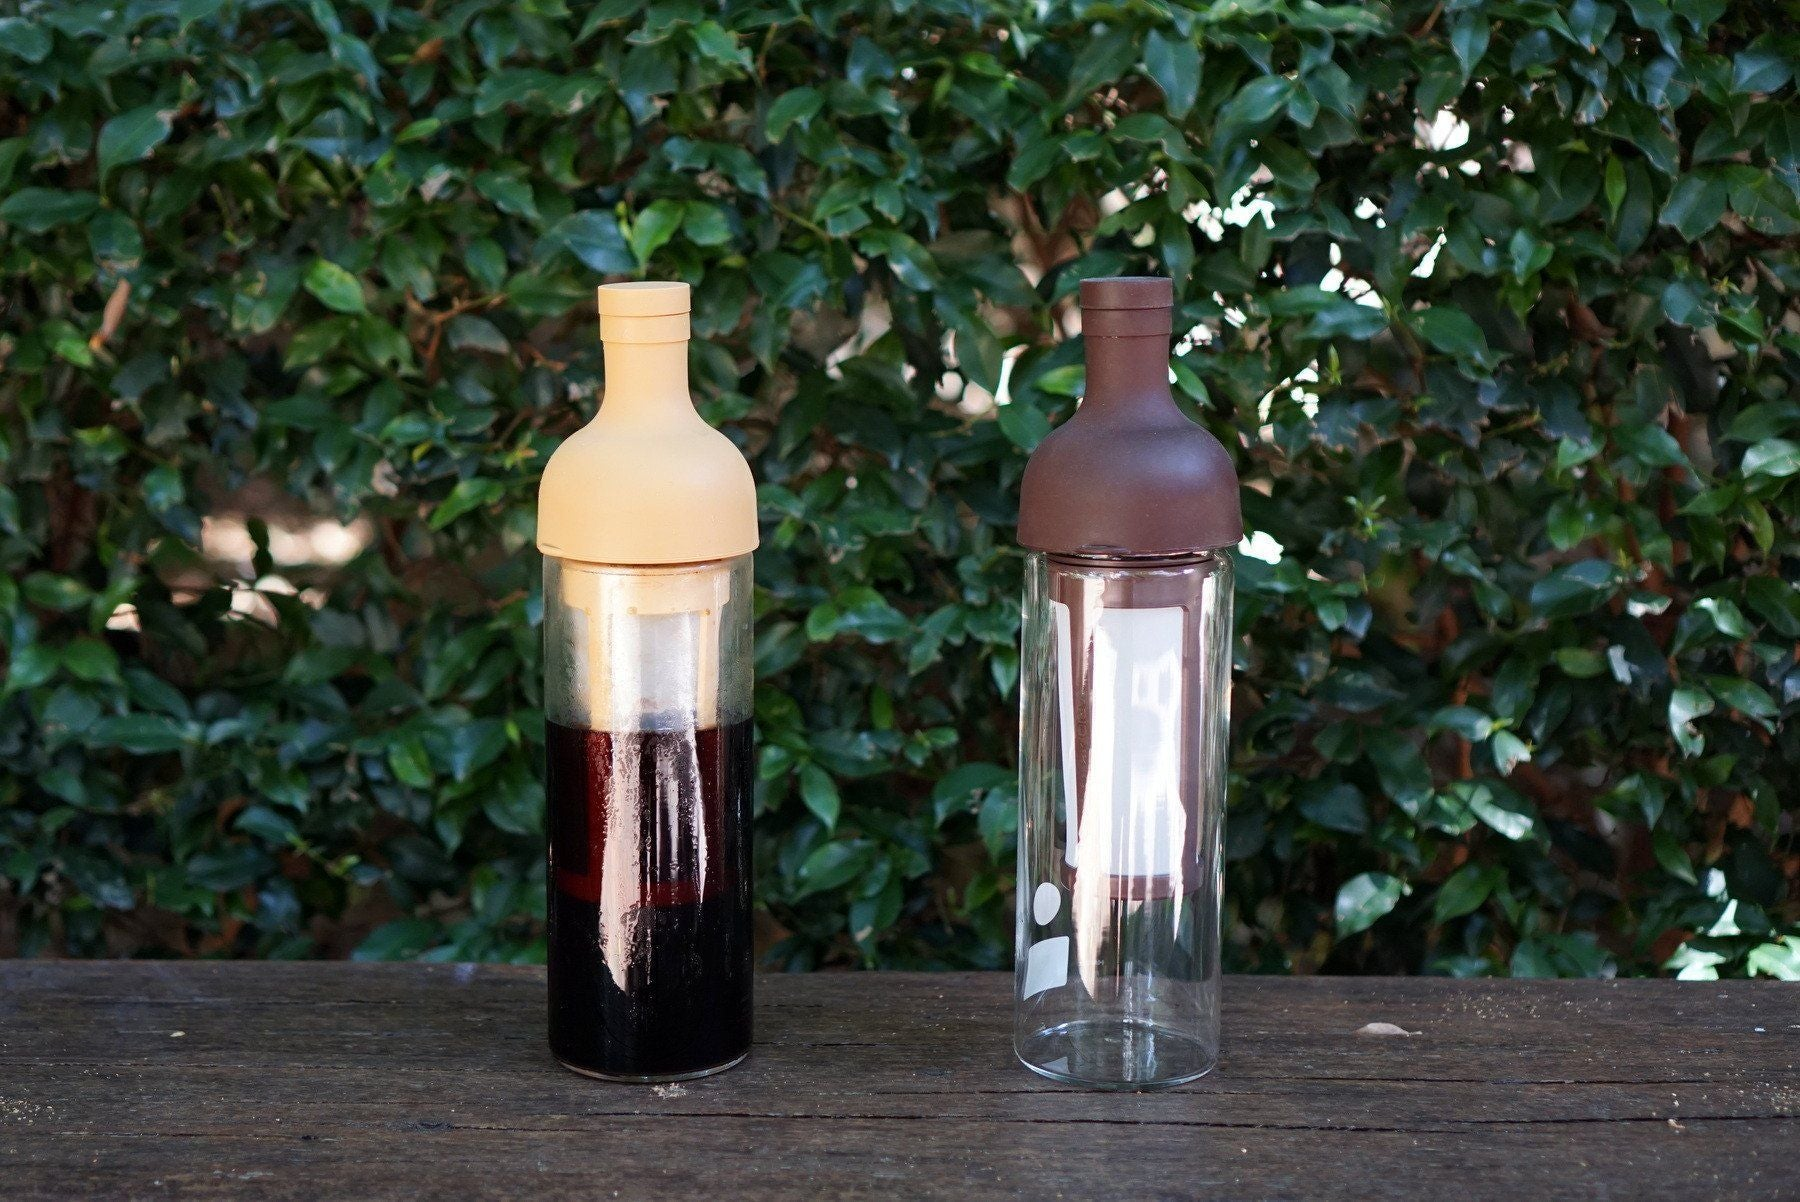 Hario Filter In Cold Brew Coffee Bottle Cold Brew Hario